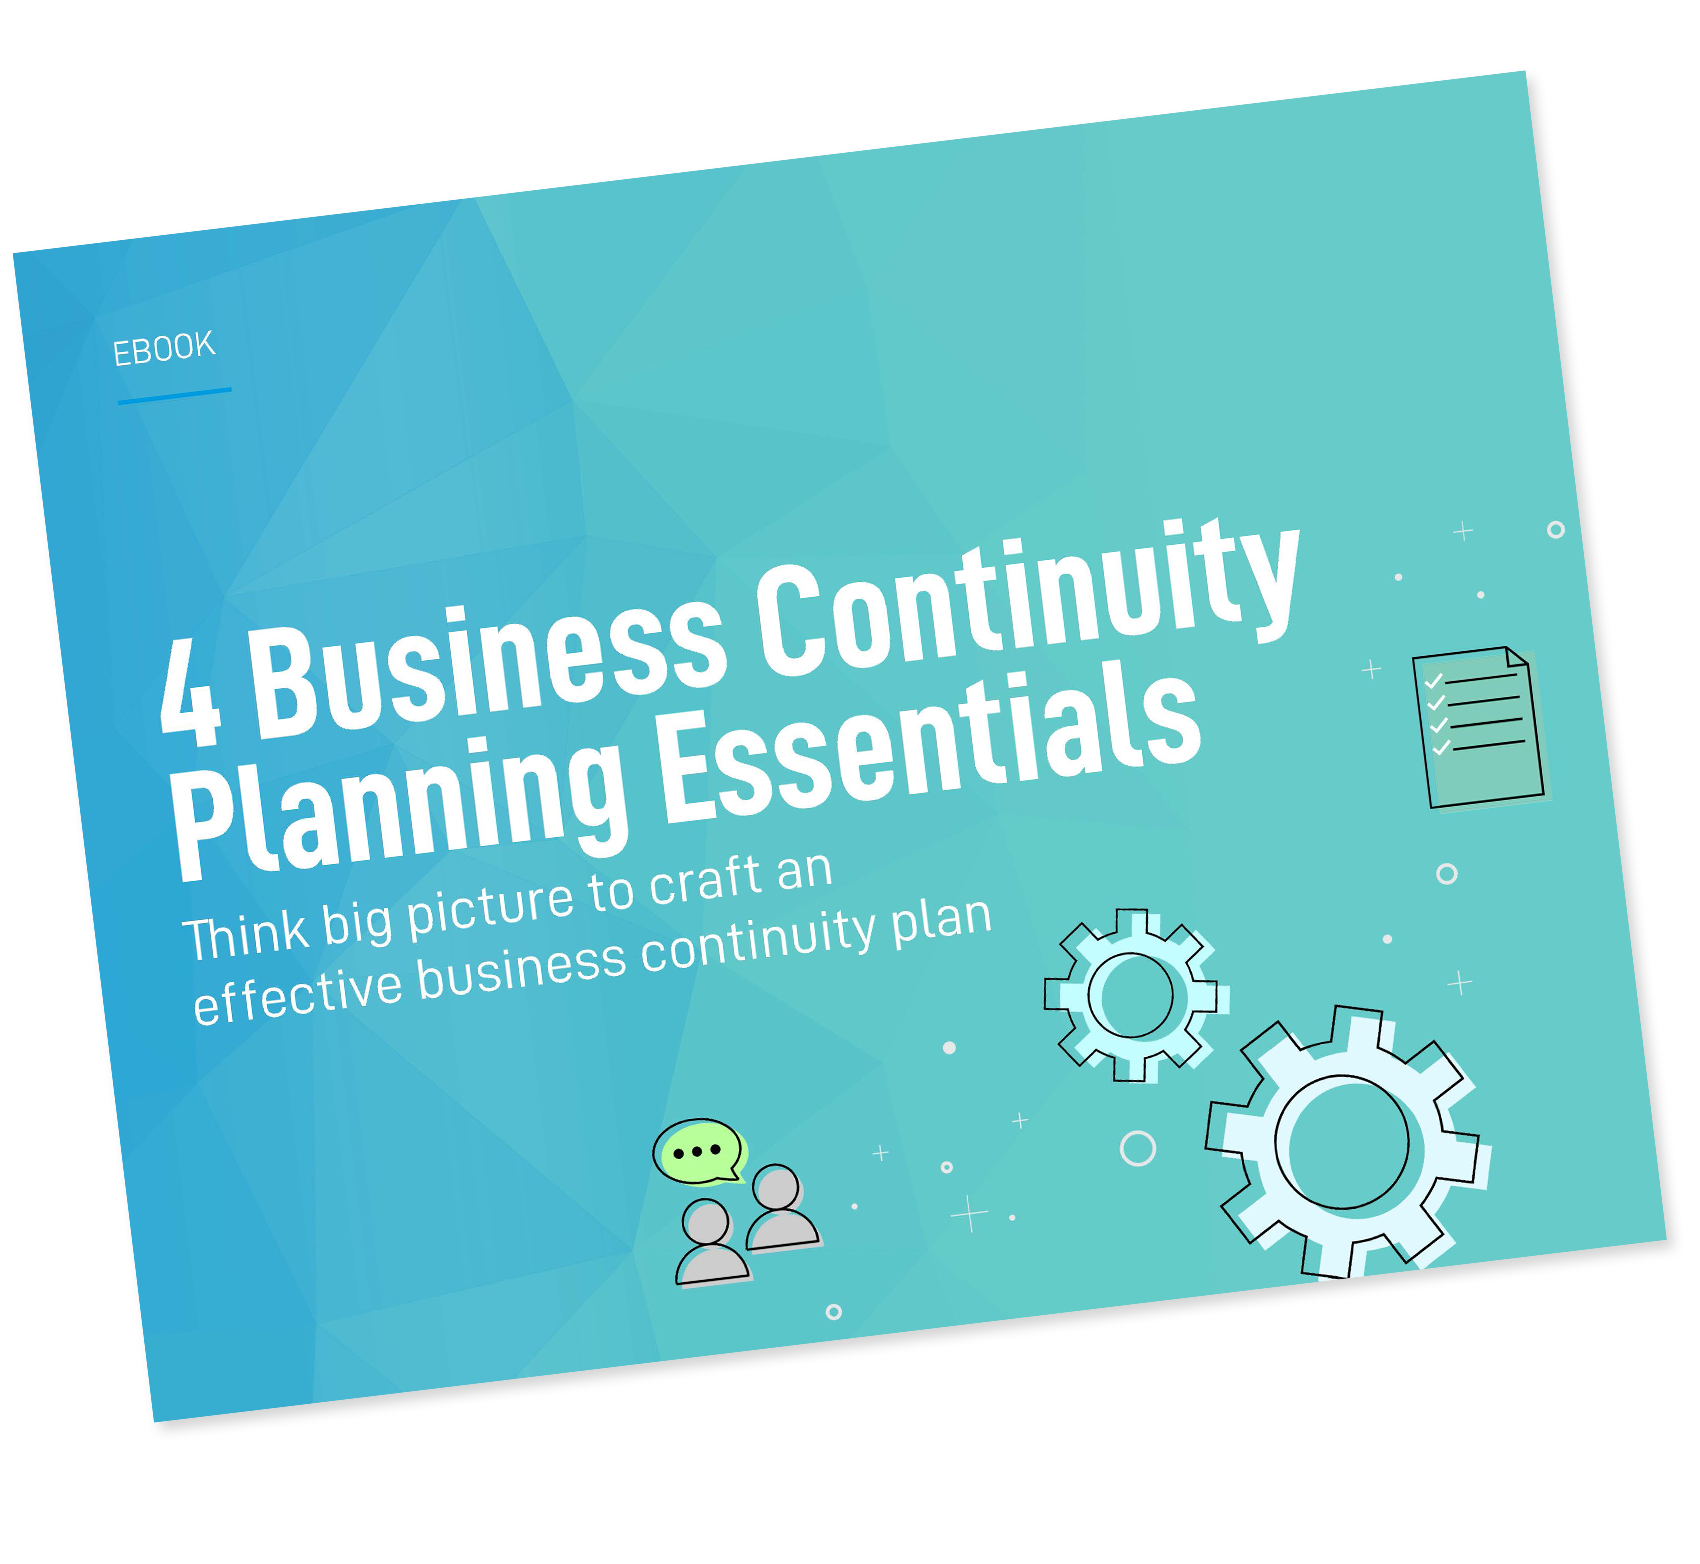 4 business continuity pdf mockup.png